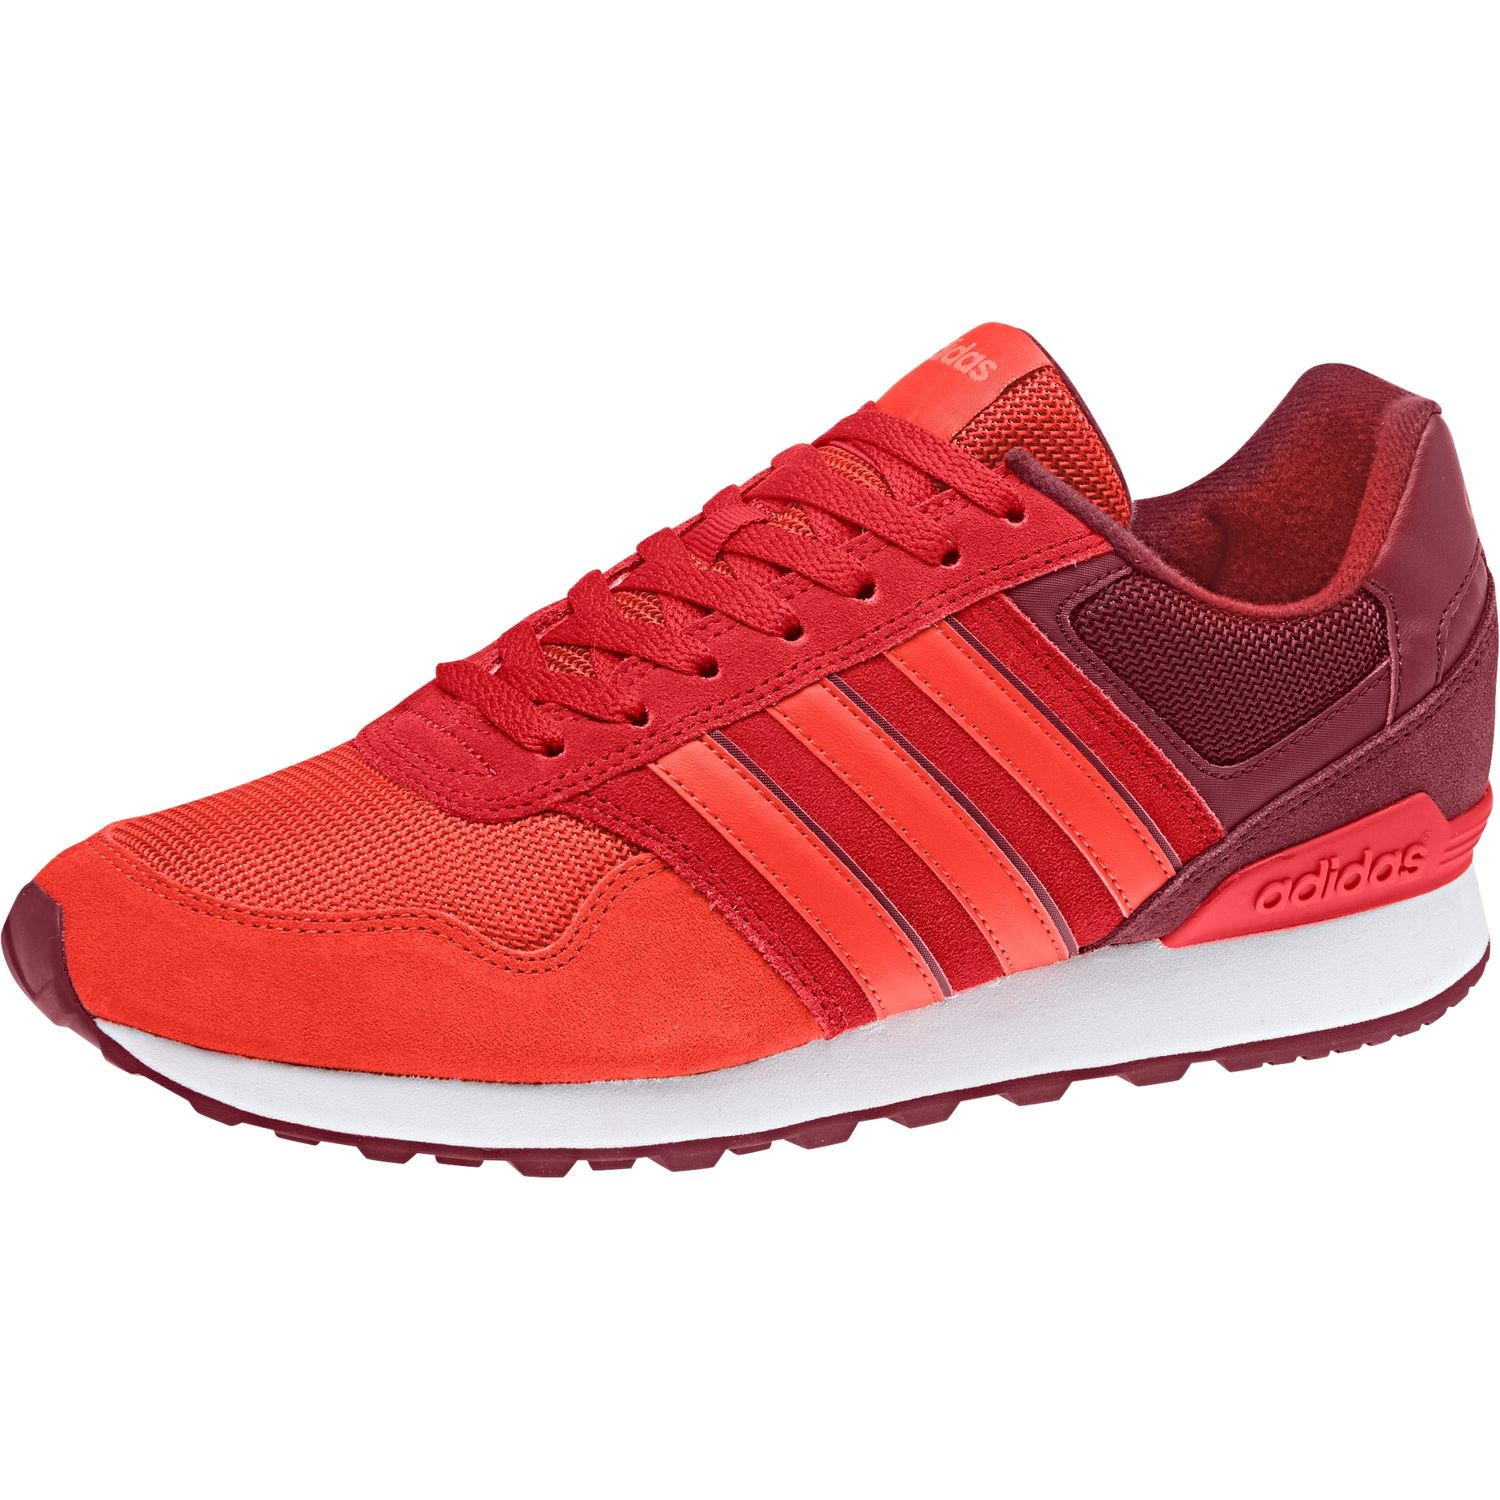 buy popular a818f 225fb adidas performance shoes sneaker NEO mens 10 k low top red DB0470 core